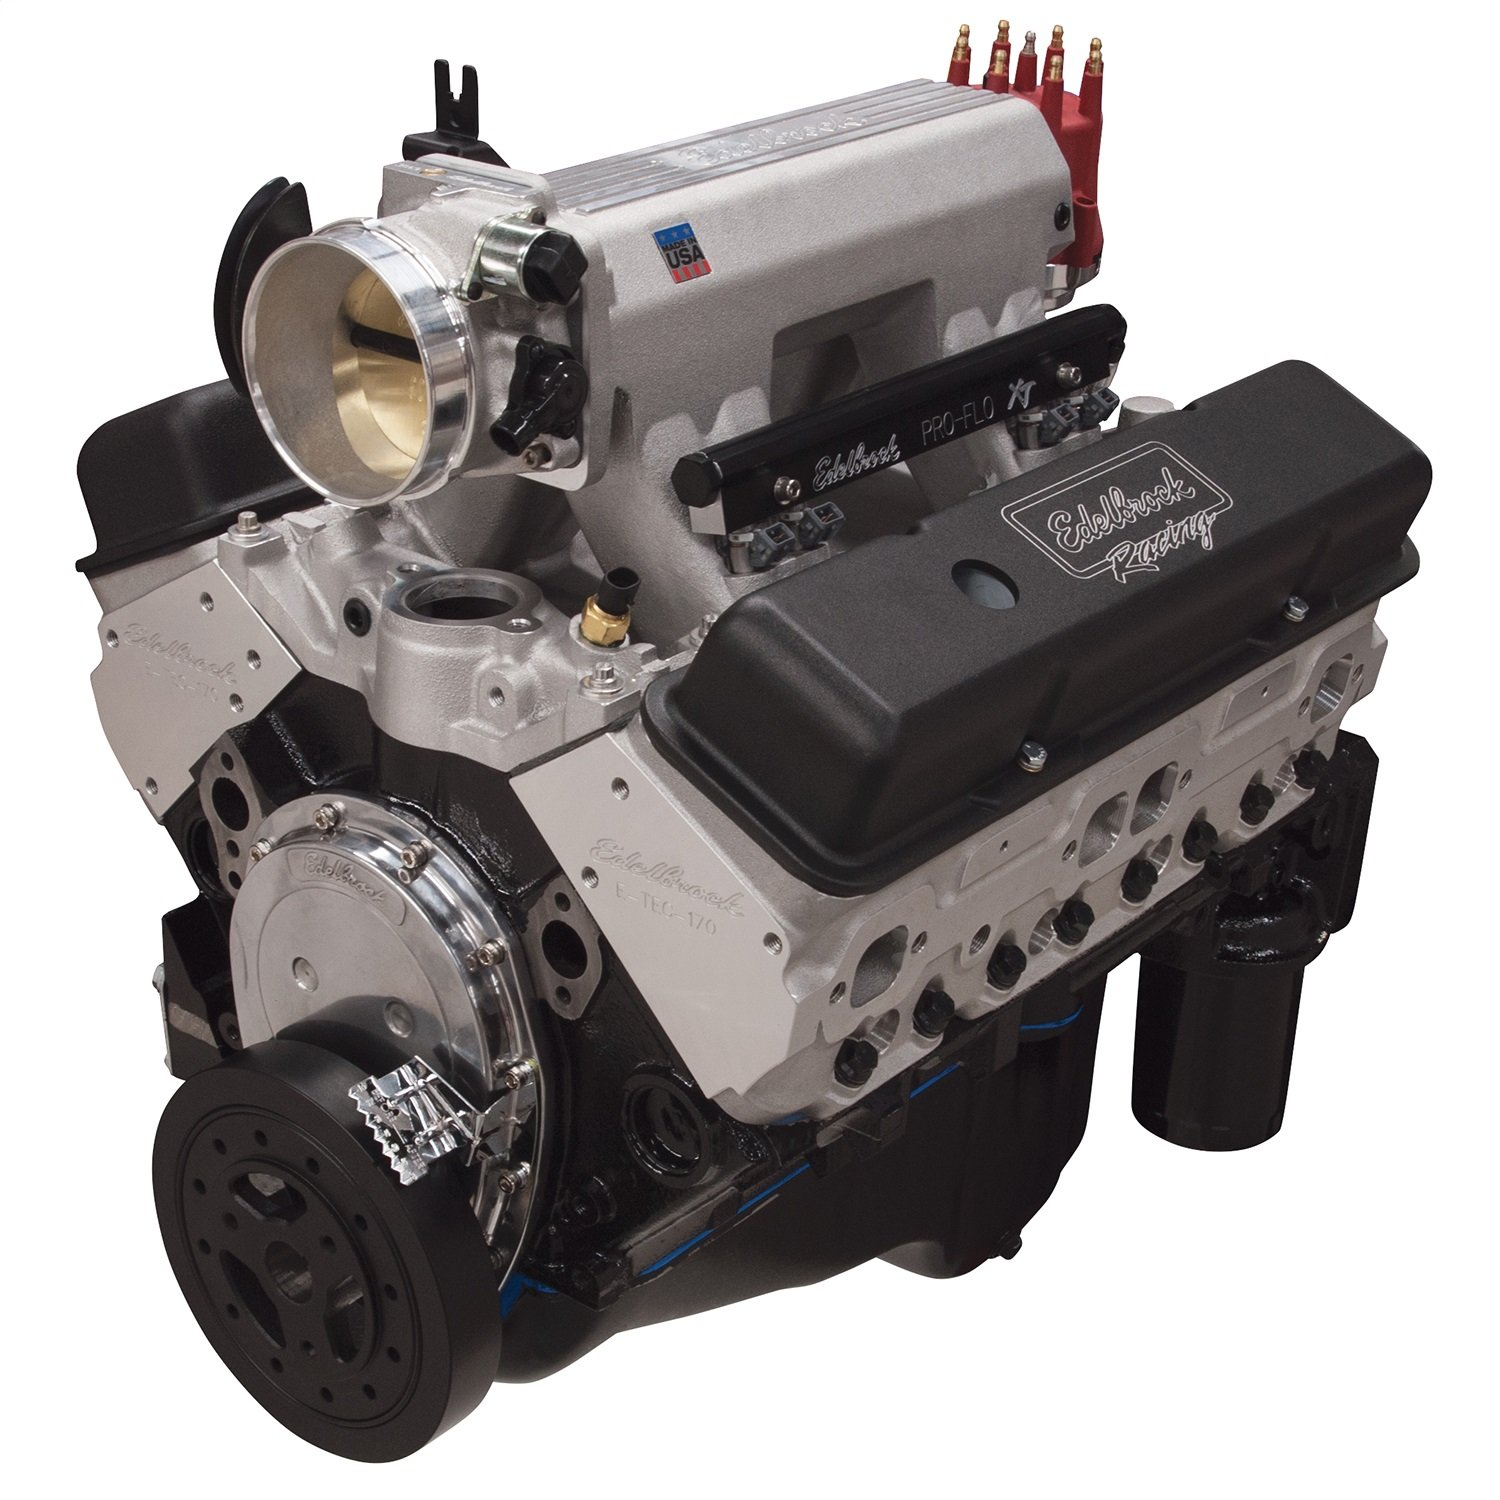 Cheap 401 Engine, find 401 Engine deals on line at Alibaba com